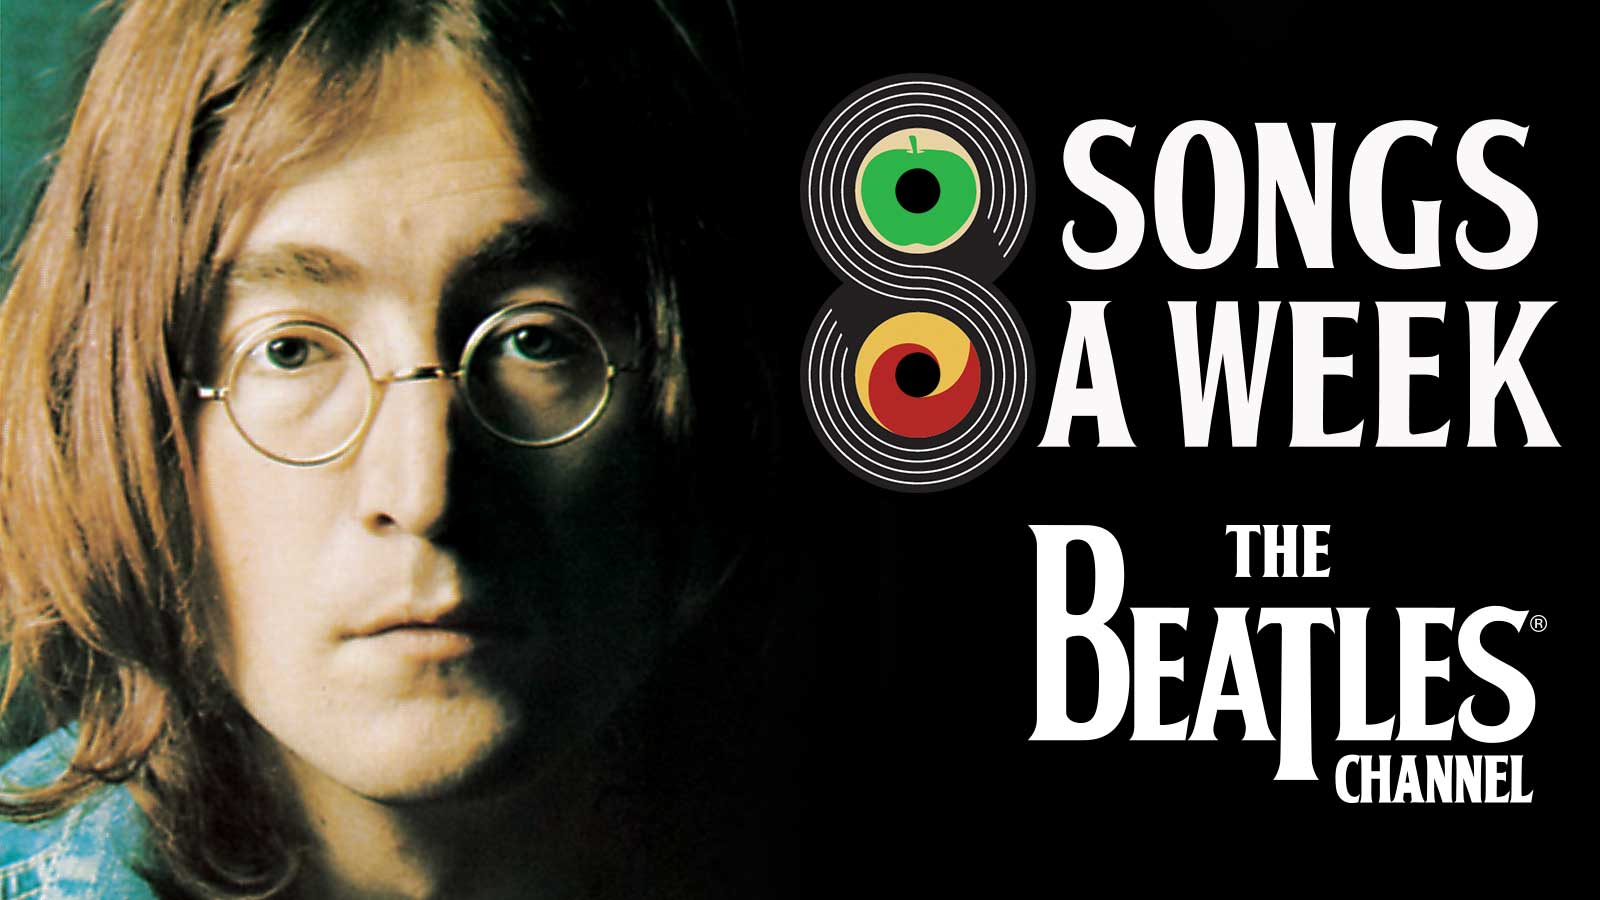 8 Songs A Week: In honor of John Lennon's birthday, vote for the best Beatles and solo songs with John on lead vocal (POLL CLOSES 10/1/2021)